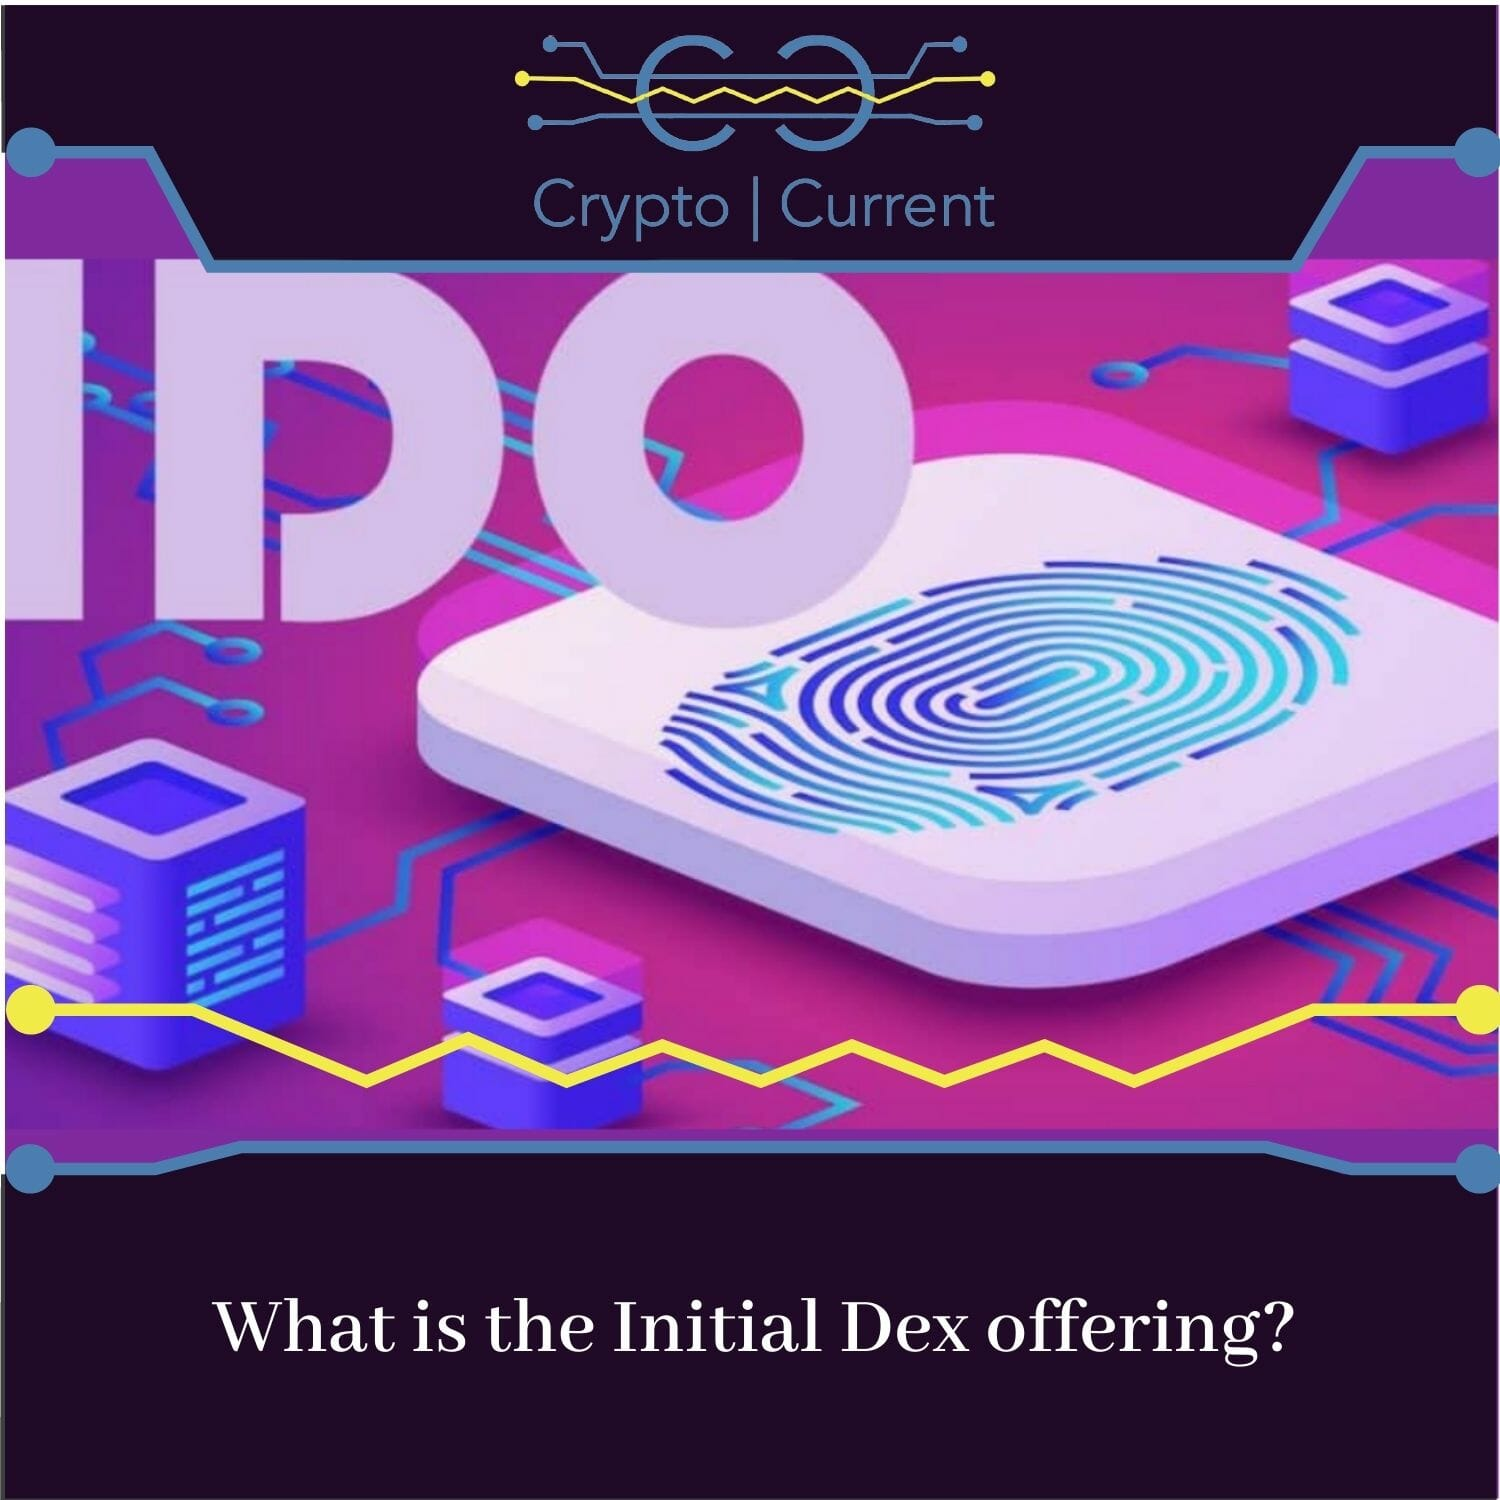 What is the Initial Dex offering?